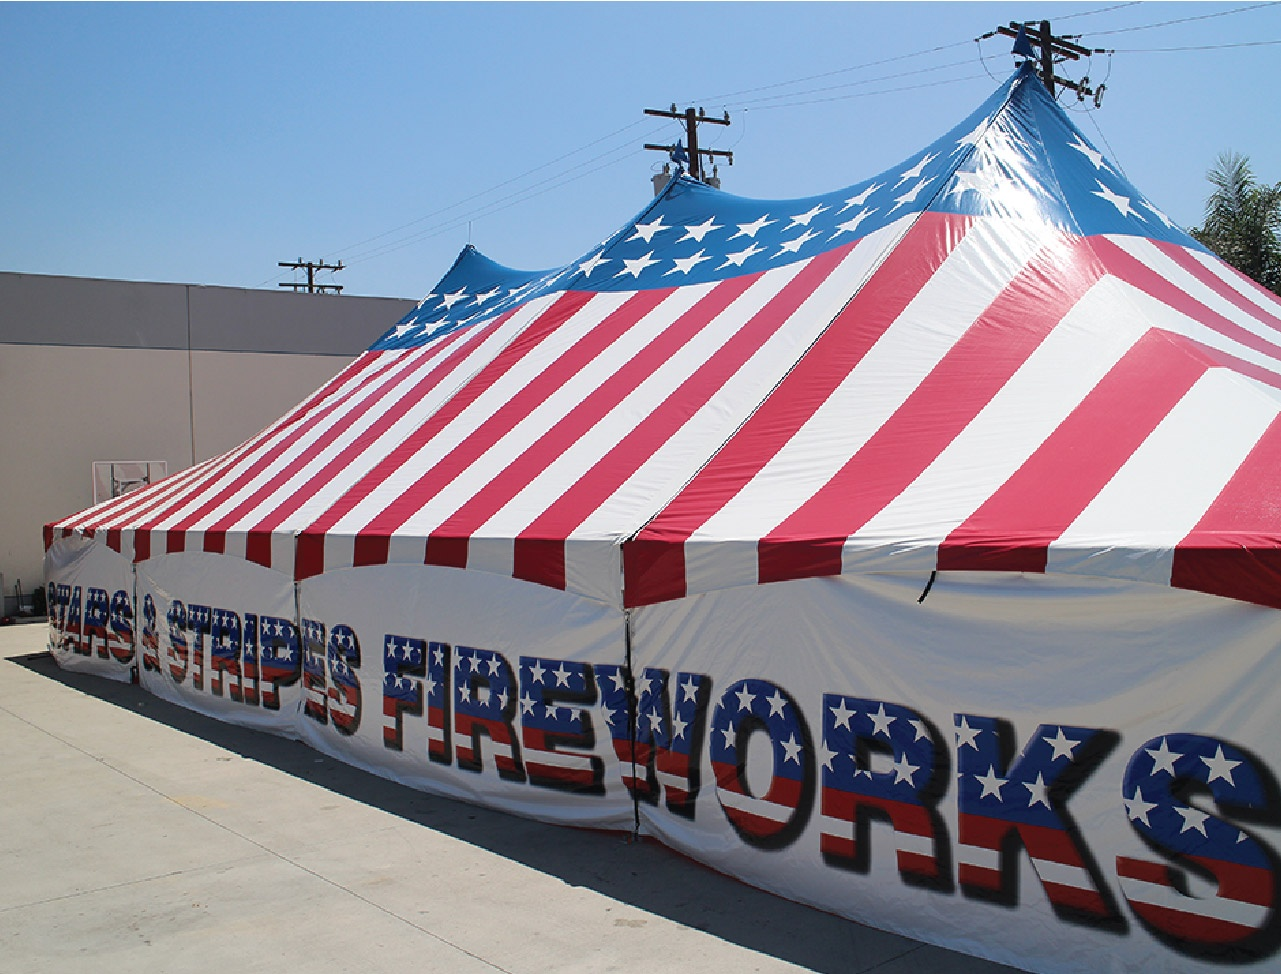 Stars and Stripes USA Patriotic Triple High Peak Frame Tent with stars and straps fireworks printed all across the side of the visible wall